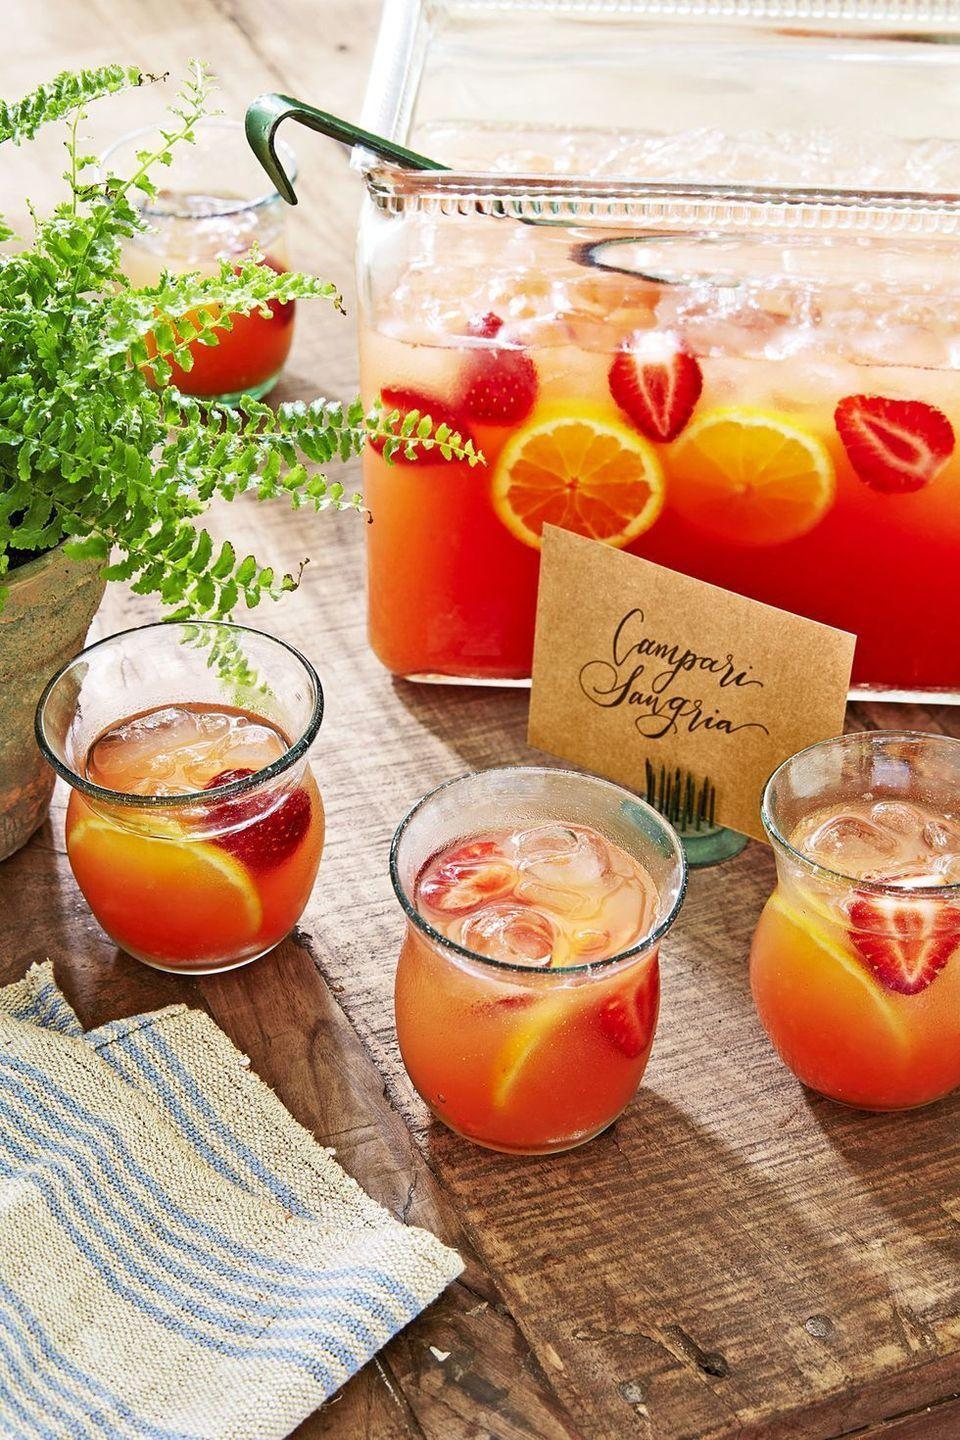 """<p>The fruity yet bitter liqueur adds interest (and bright color!) to this simple rosé sangria.</p><p><em><a href=""""https://www.countryliving.com/food-drinks/a22668011/campari-sangria-recipe/"""" rel=""""nofollow noopener"""" target=""""_blank"""" data-ylk=""""slk:Get the recipe from Country Living »"""" class=""""link rapid-noclick-resp"""">Get the recipe from Country Living »</a></em></p><p><strong>RELATED: </strong><a href=""""https://www.goodhousekeeping.com/food-recipes/easy/g3589/best-sangria-recipes/"""" rel=""""nofollow noopener"""" target=""""_blank"""" data-ylk=""""slk:24 Best Sangria Recipes to Sip All Summer Long"""" class=""""link rapid-noclick-resp"""">24 Best Sangria Recipes to Sip All Summer Long</a></p>"""